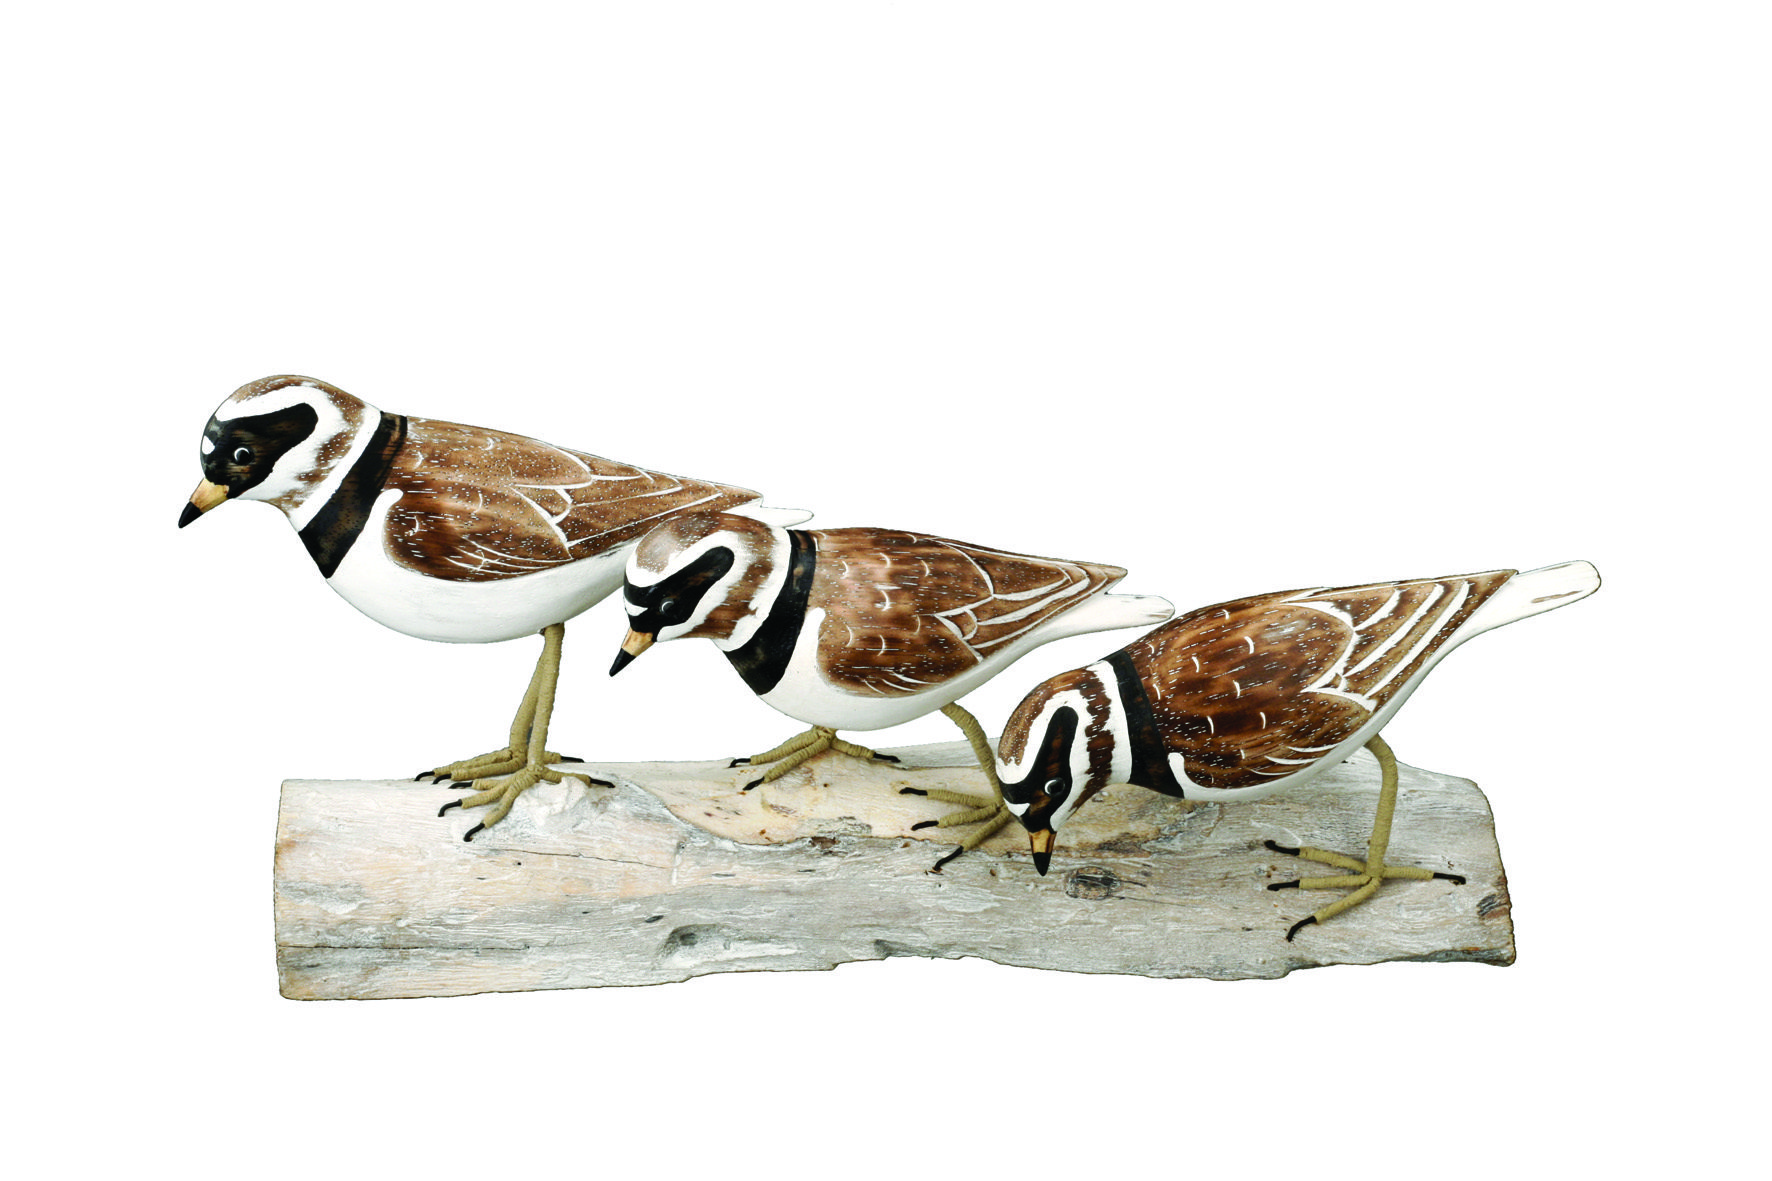 Archipelago Plovers Block Wood Carving D153 Group of plovers on a block . hand painted and carved. Fair trade